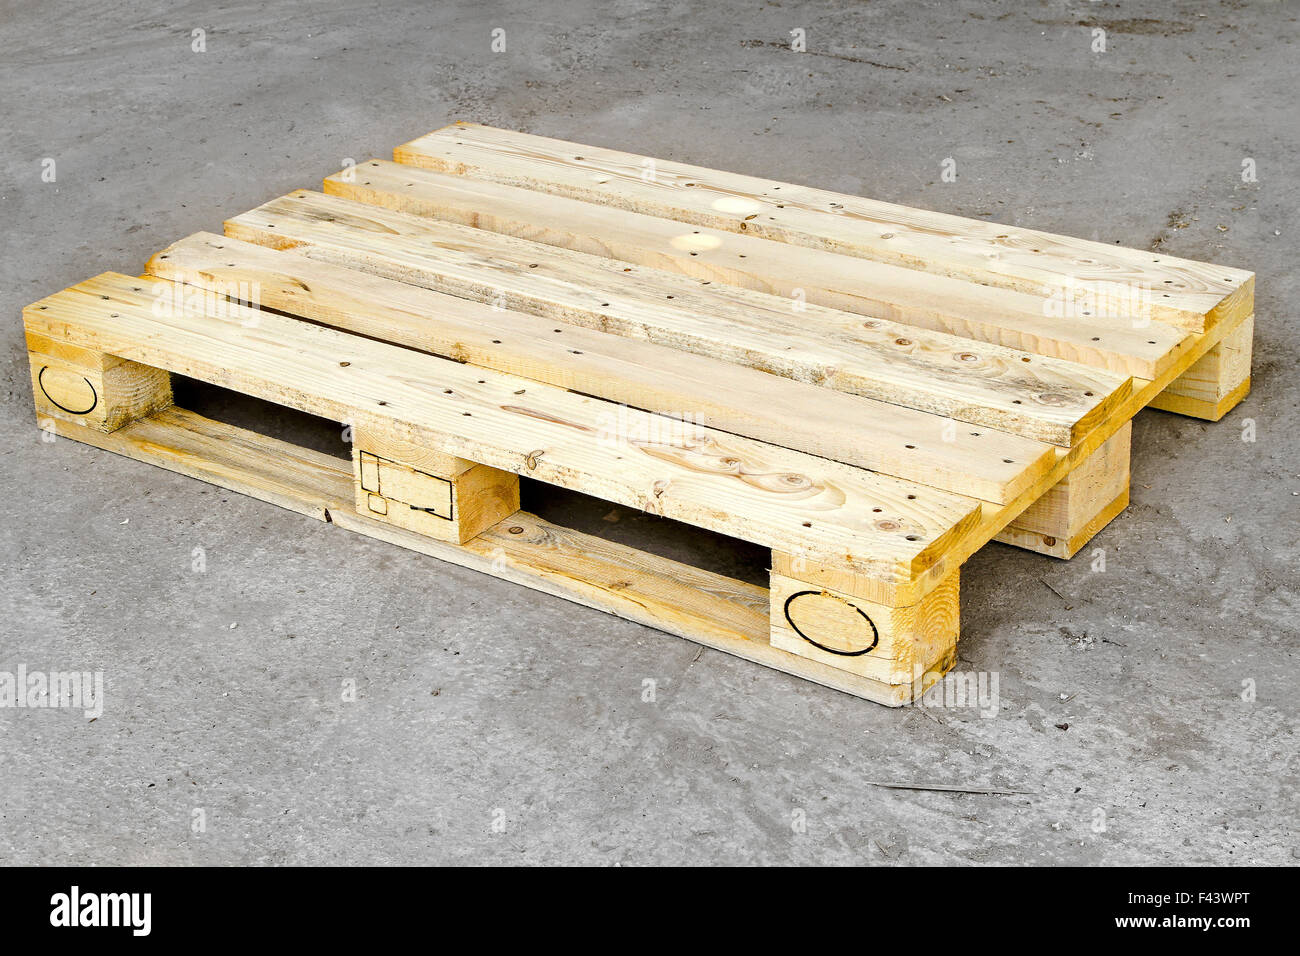 Pallet - Stock Image